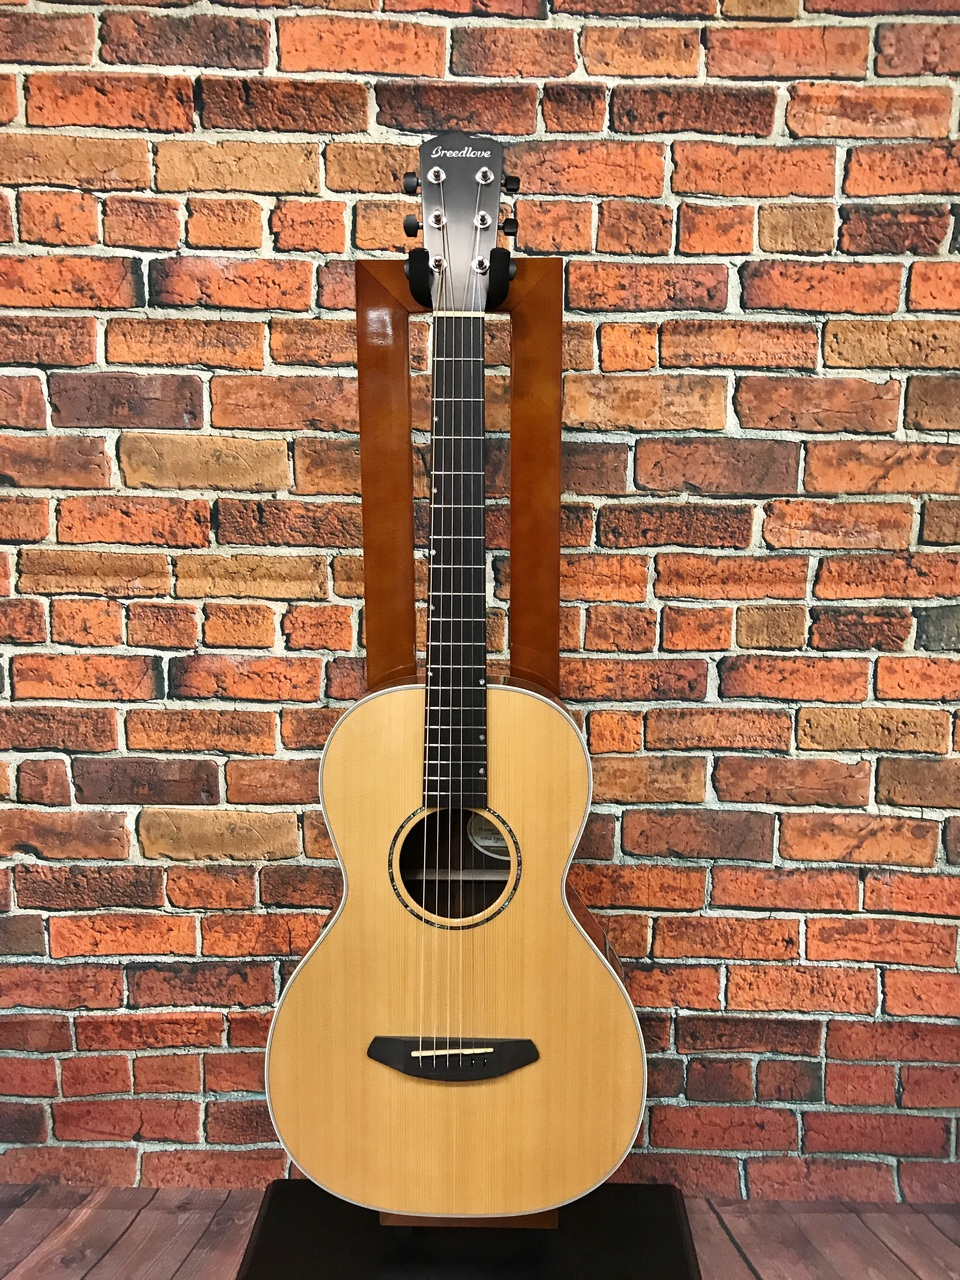 Breedlove Premier Series P22E Outlet Specials] [production completion model]